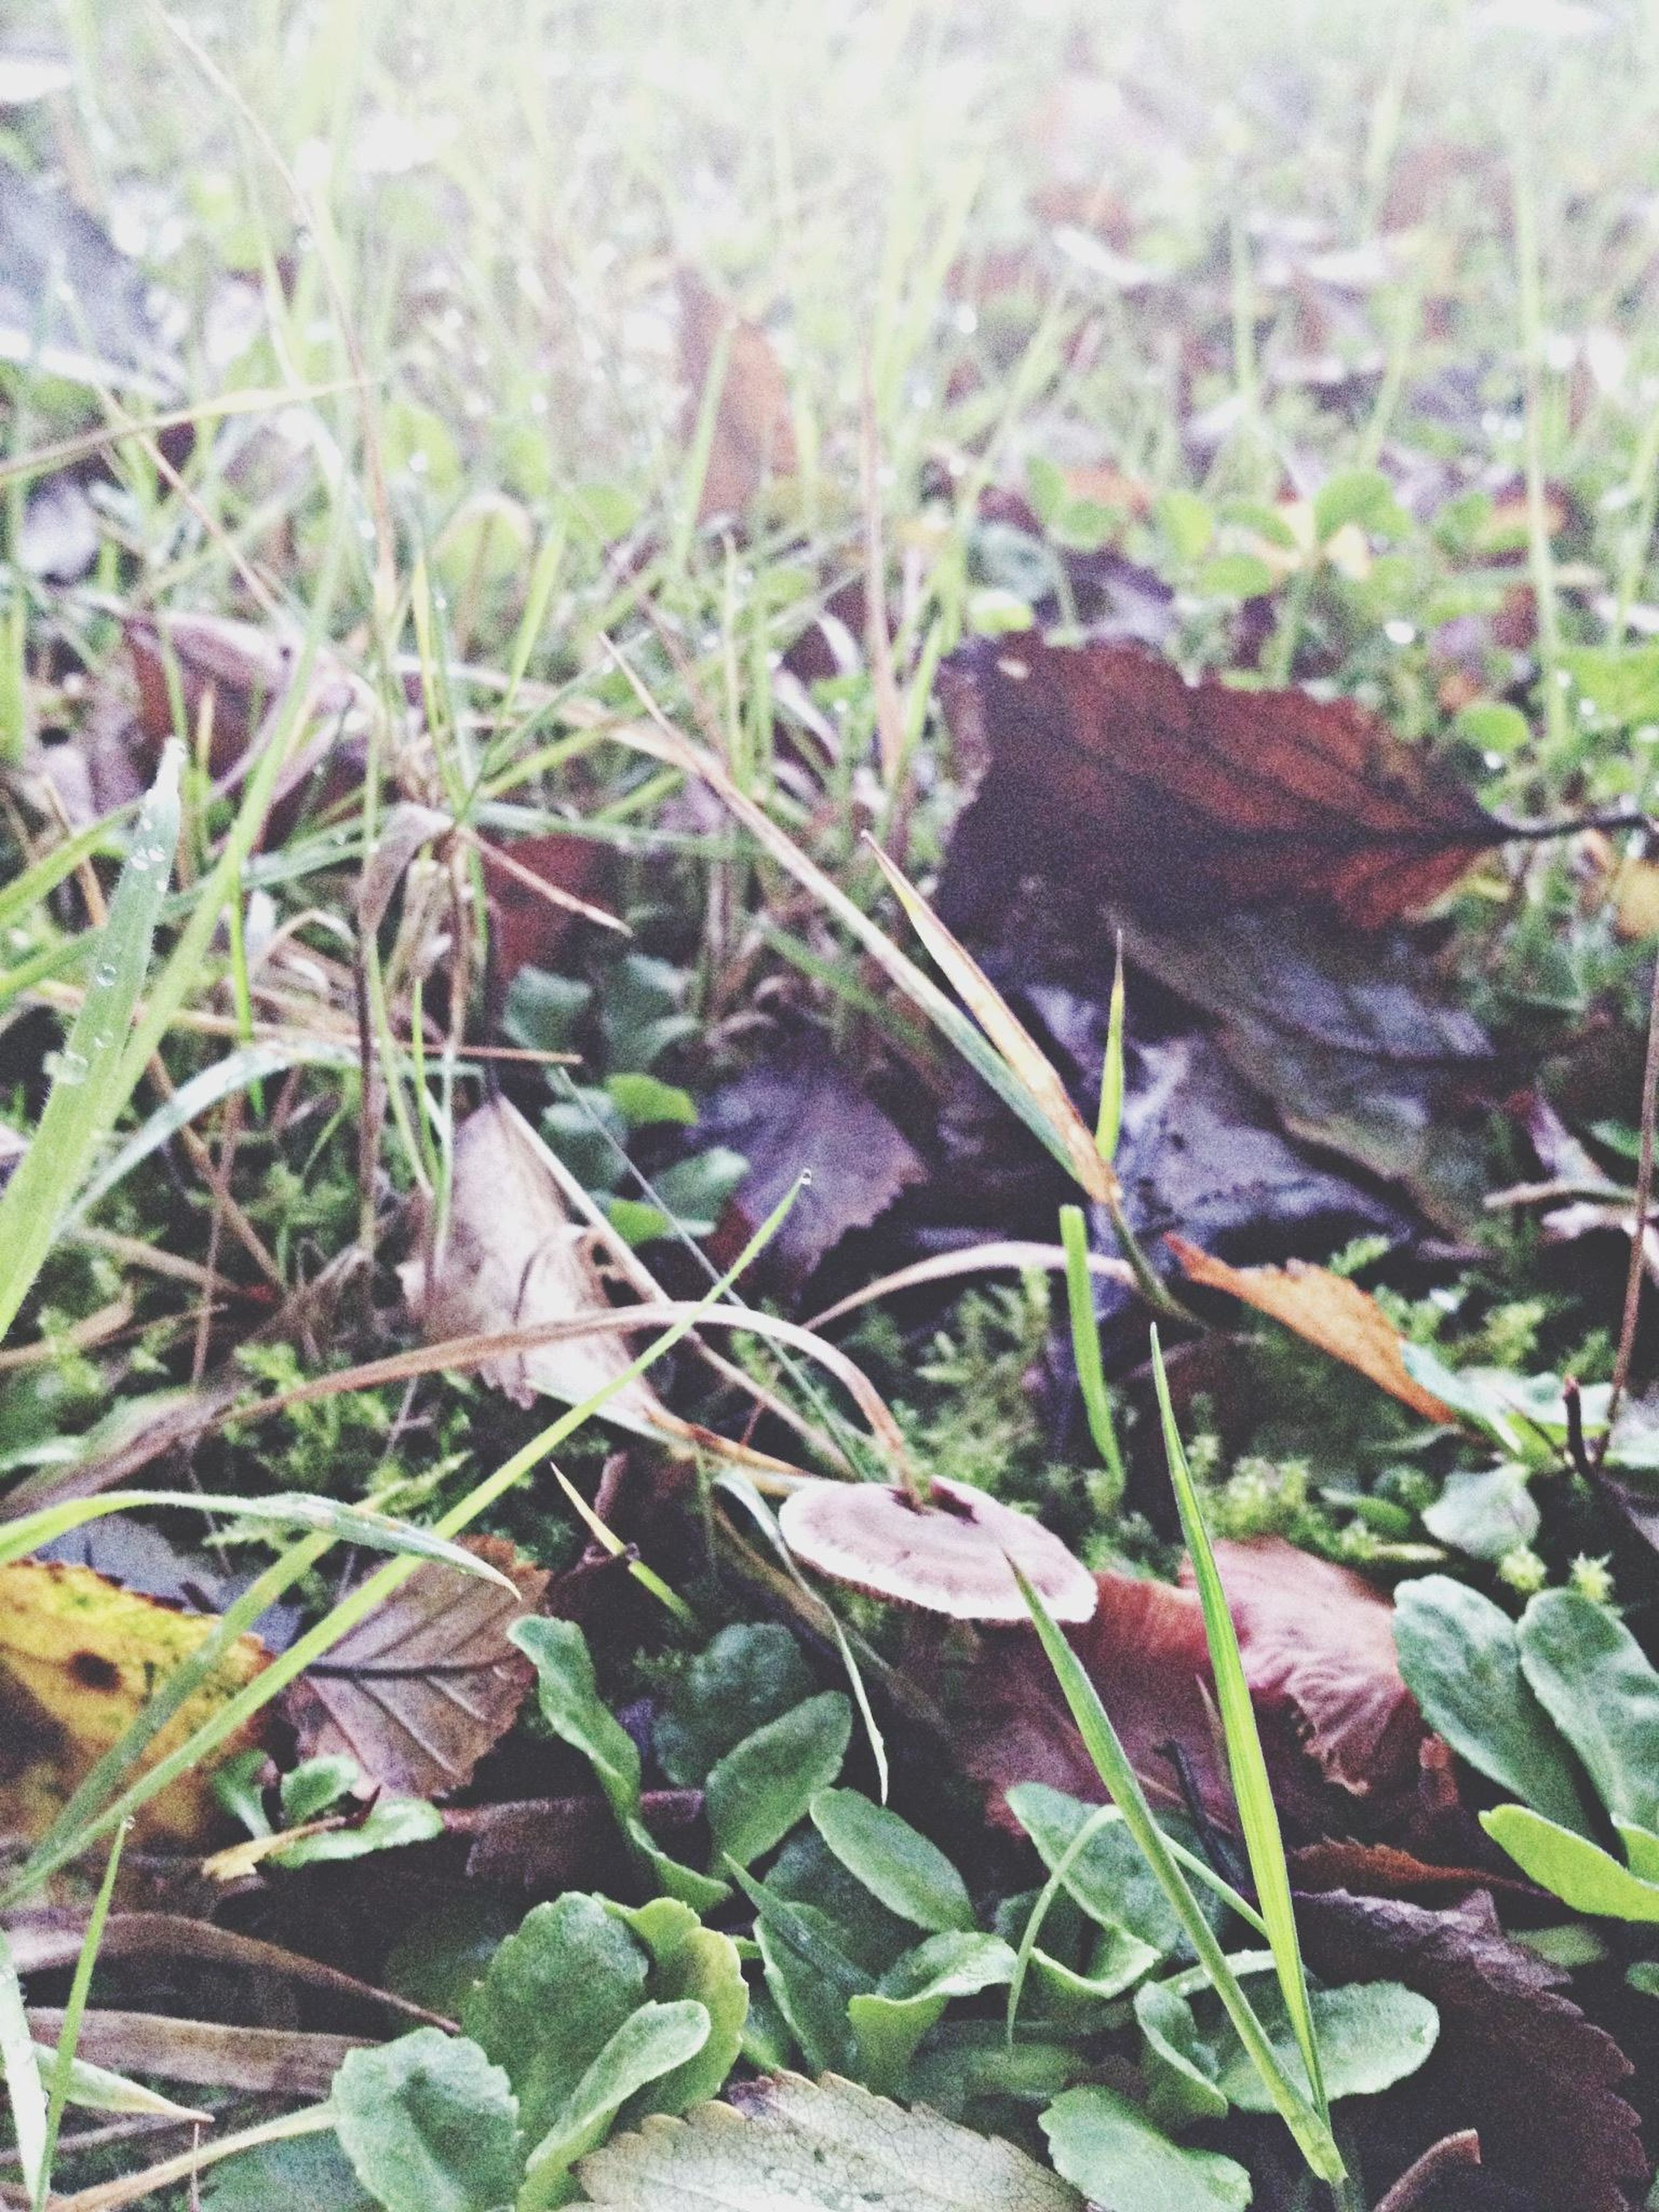 grass, growth, field, leaf, close-up, nature, plant, green color, high angle view, fragility, day, ground, mushroom, selective focus, outdoors, growing, focus on foreground, dry, grassy, no people